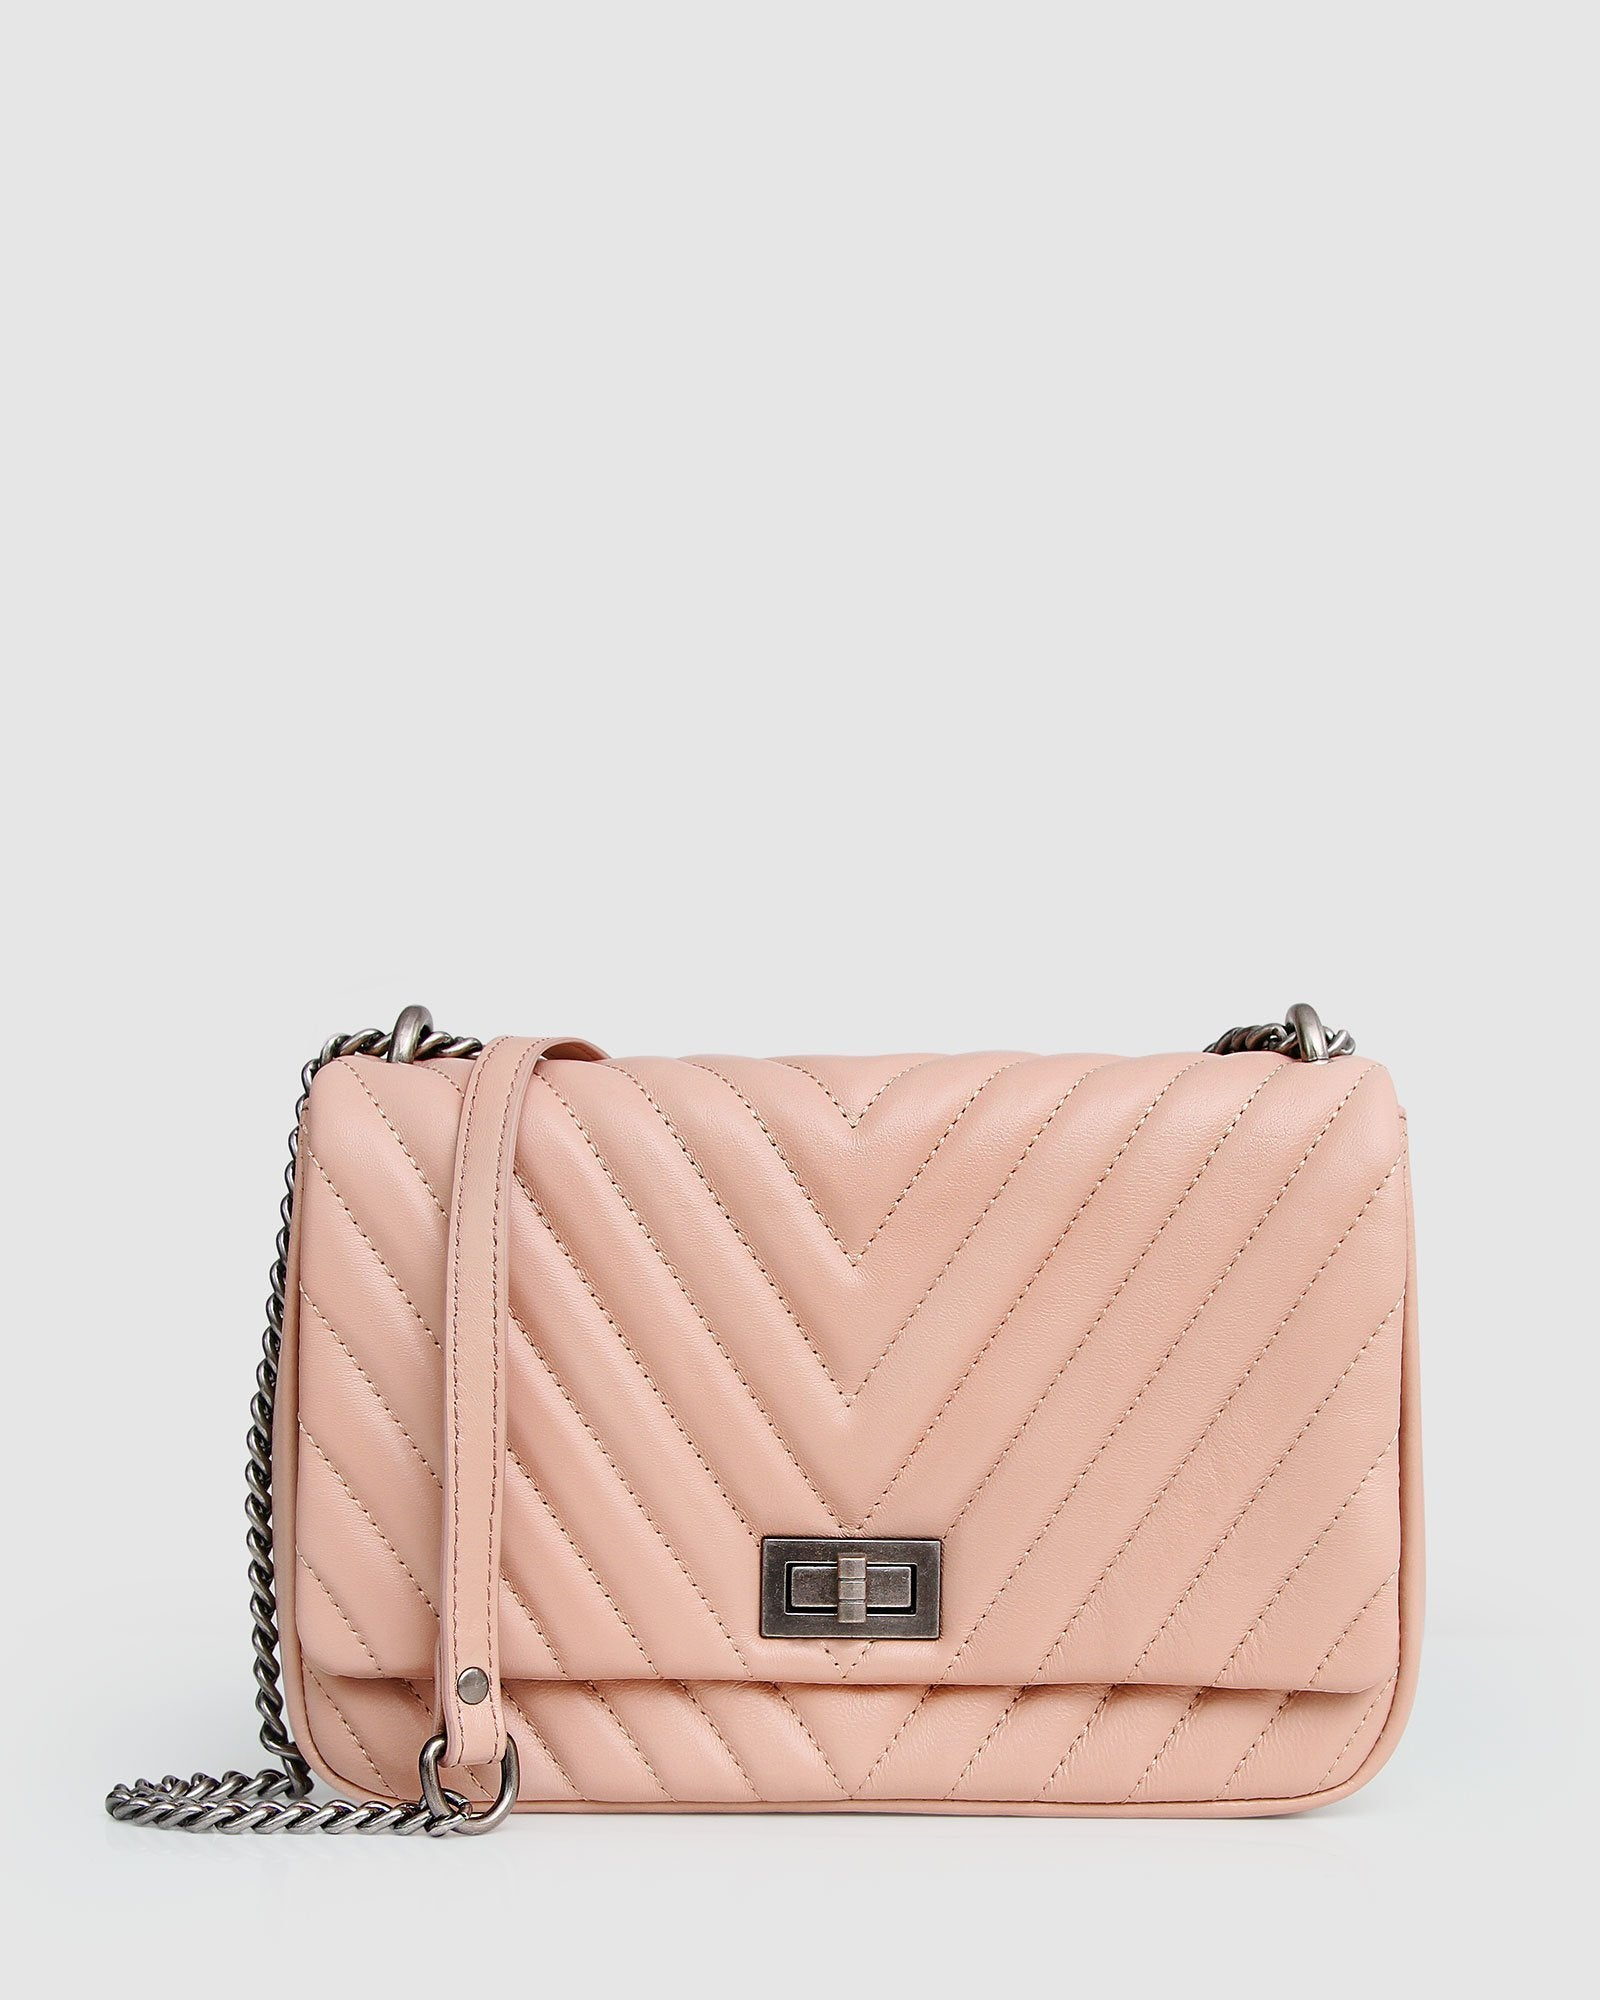 Belong to You Quilted Cross-Body Bag - Blush